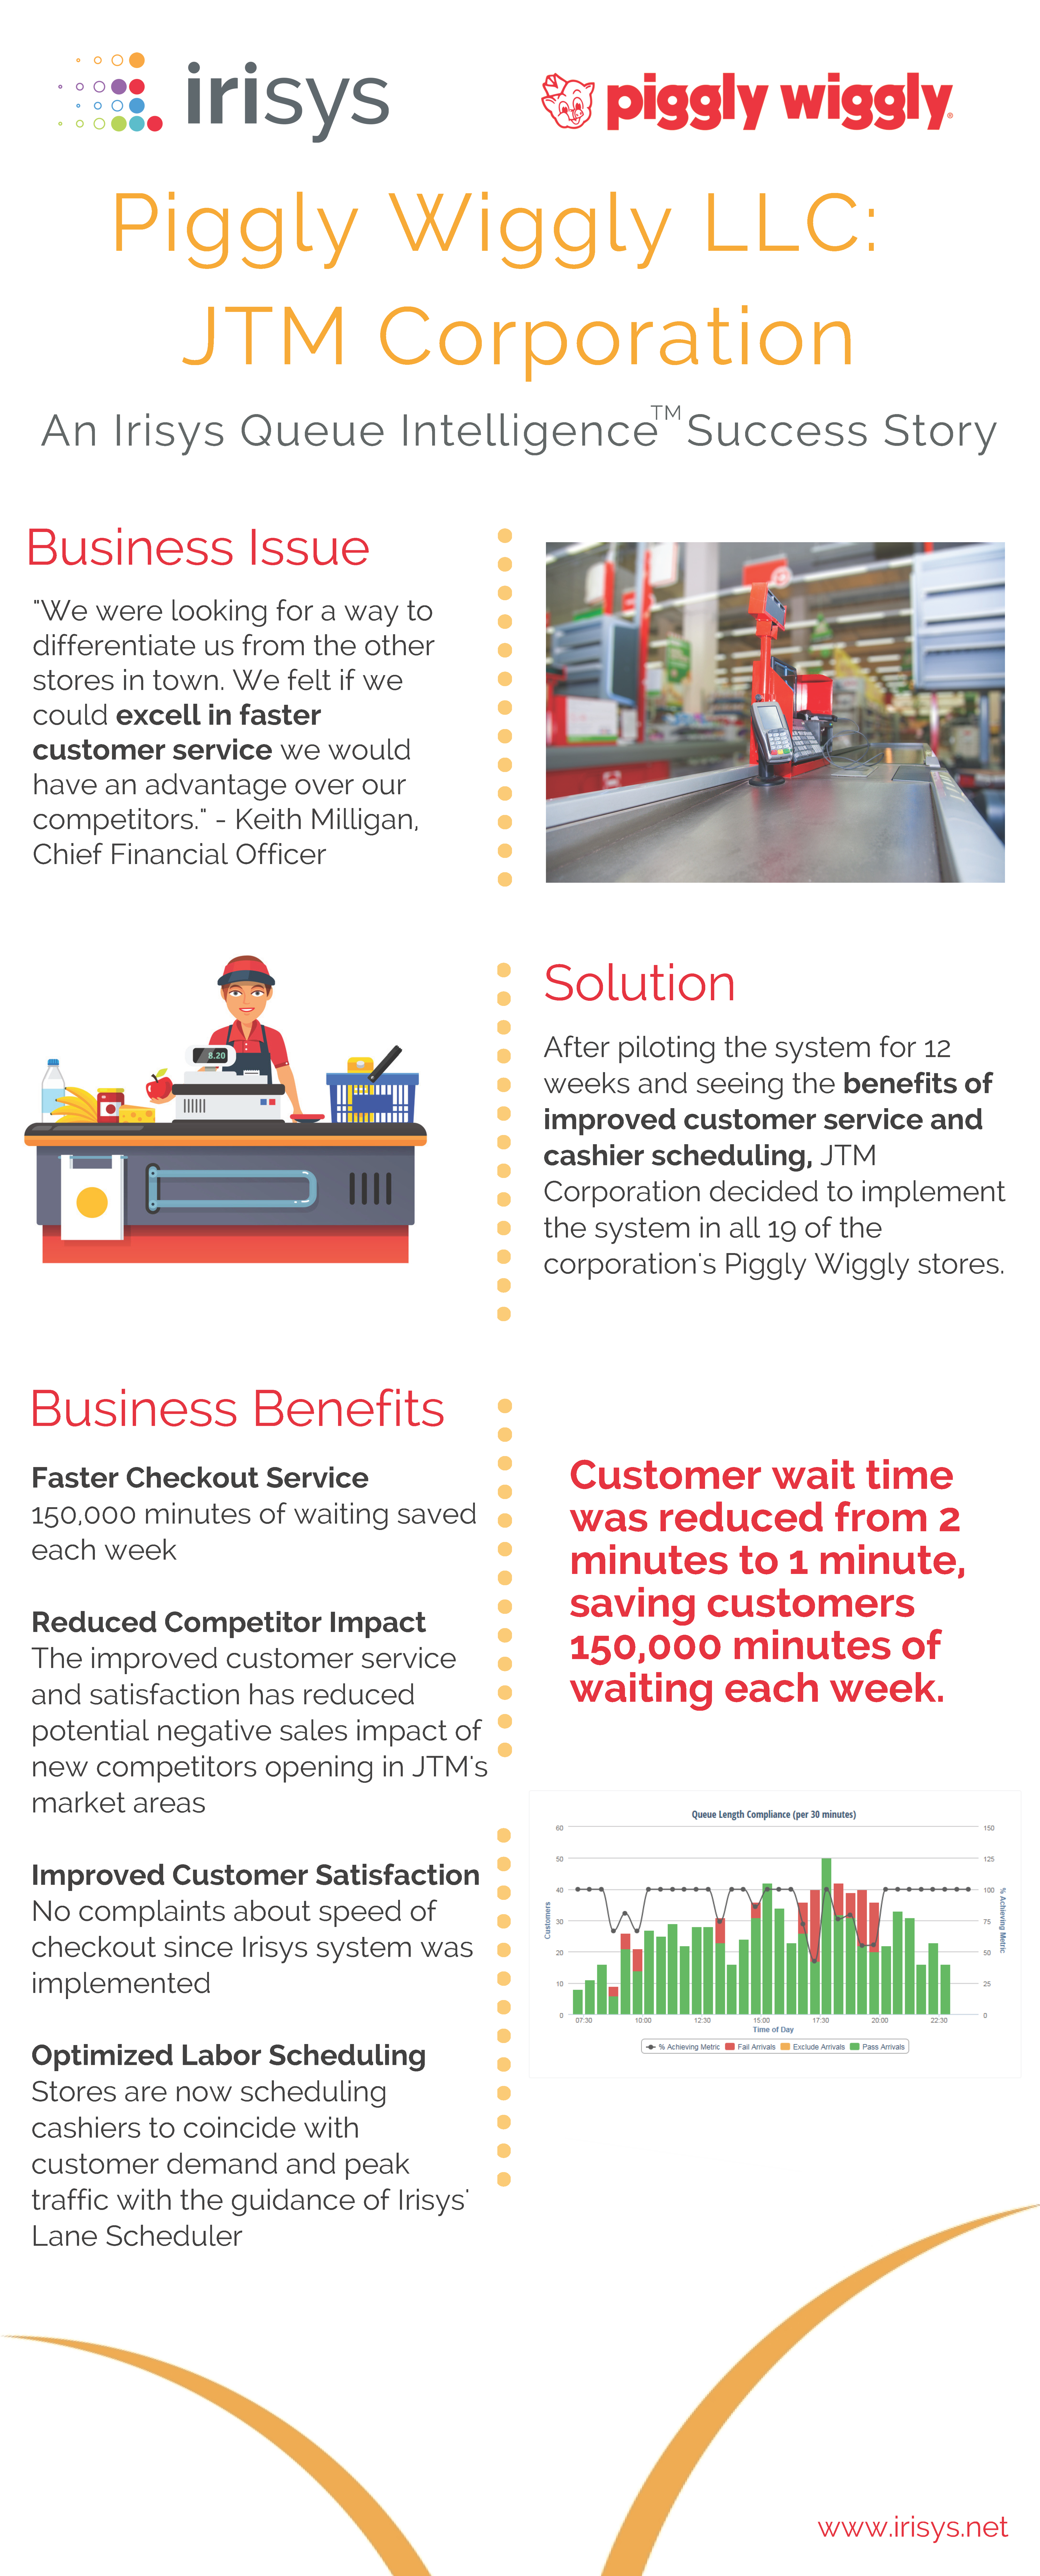 Irisys - Piggly Wiggly LLC- JTM Corporation Infographic FINAL 1.3.2017.png